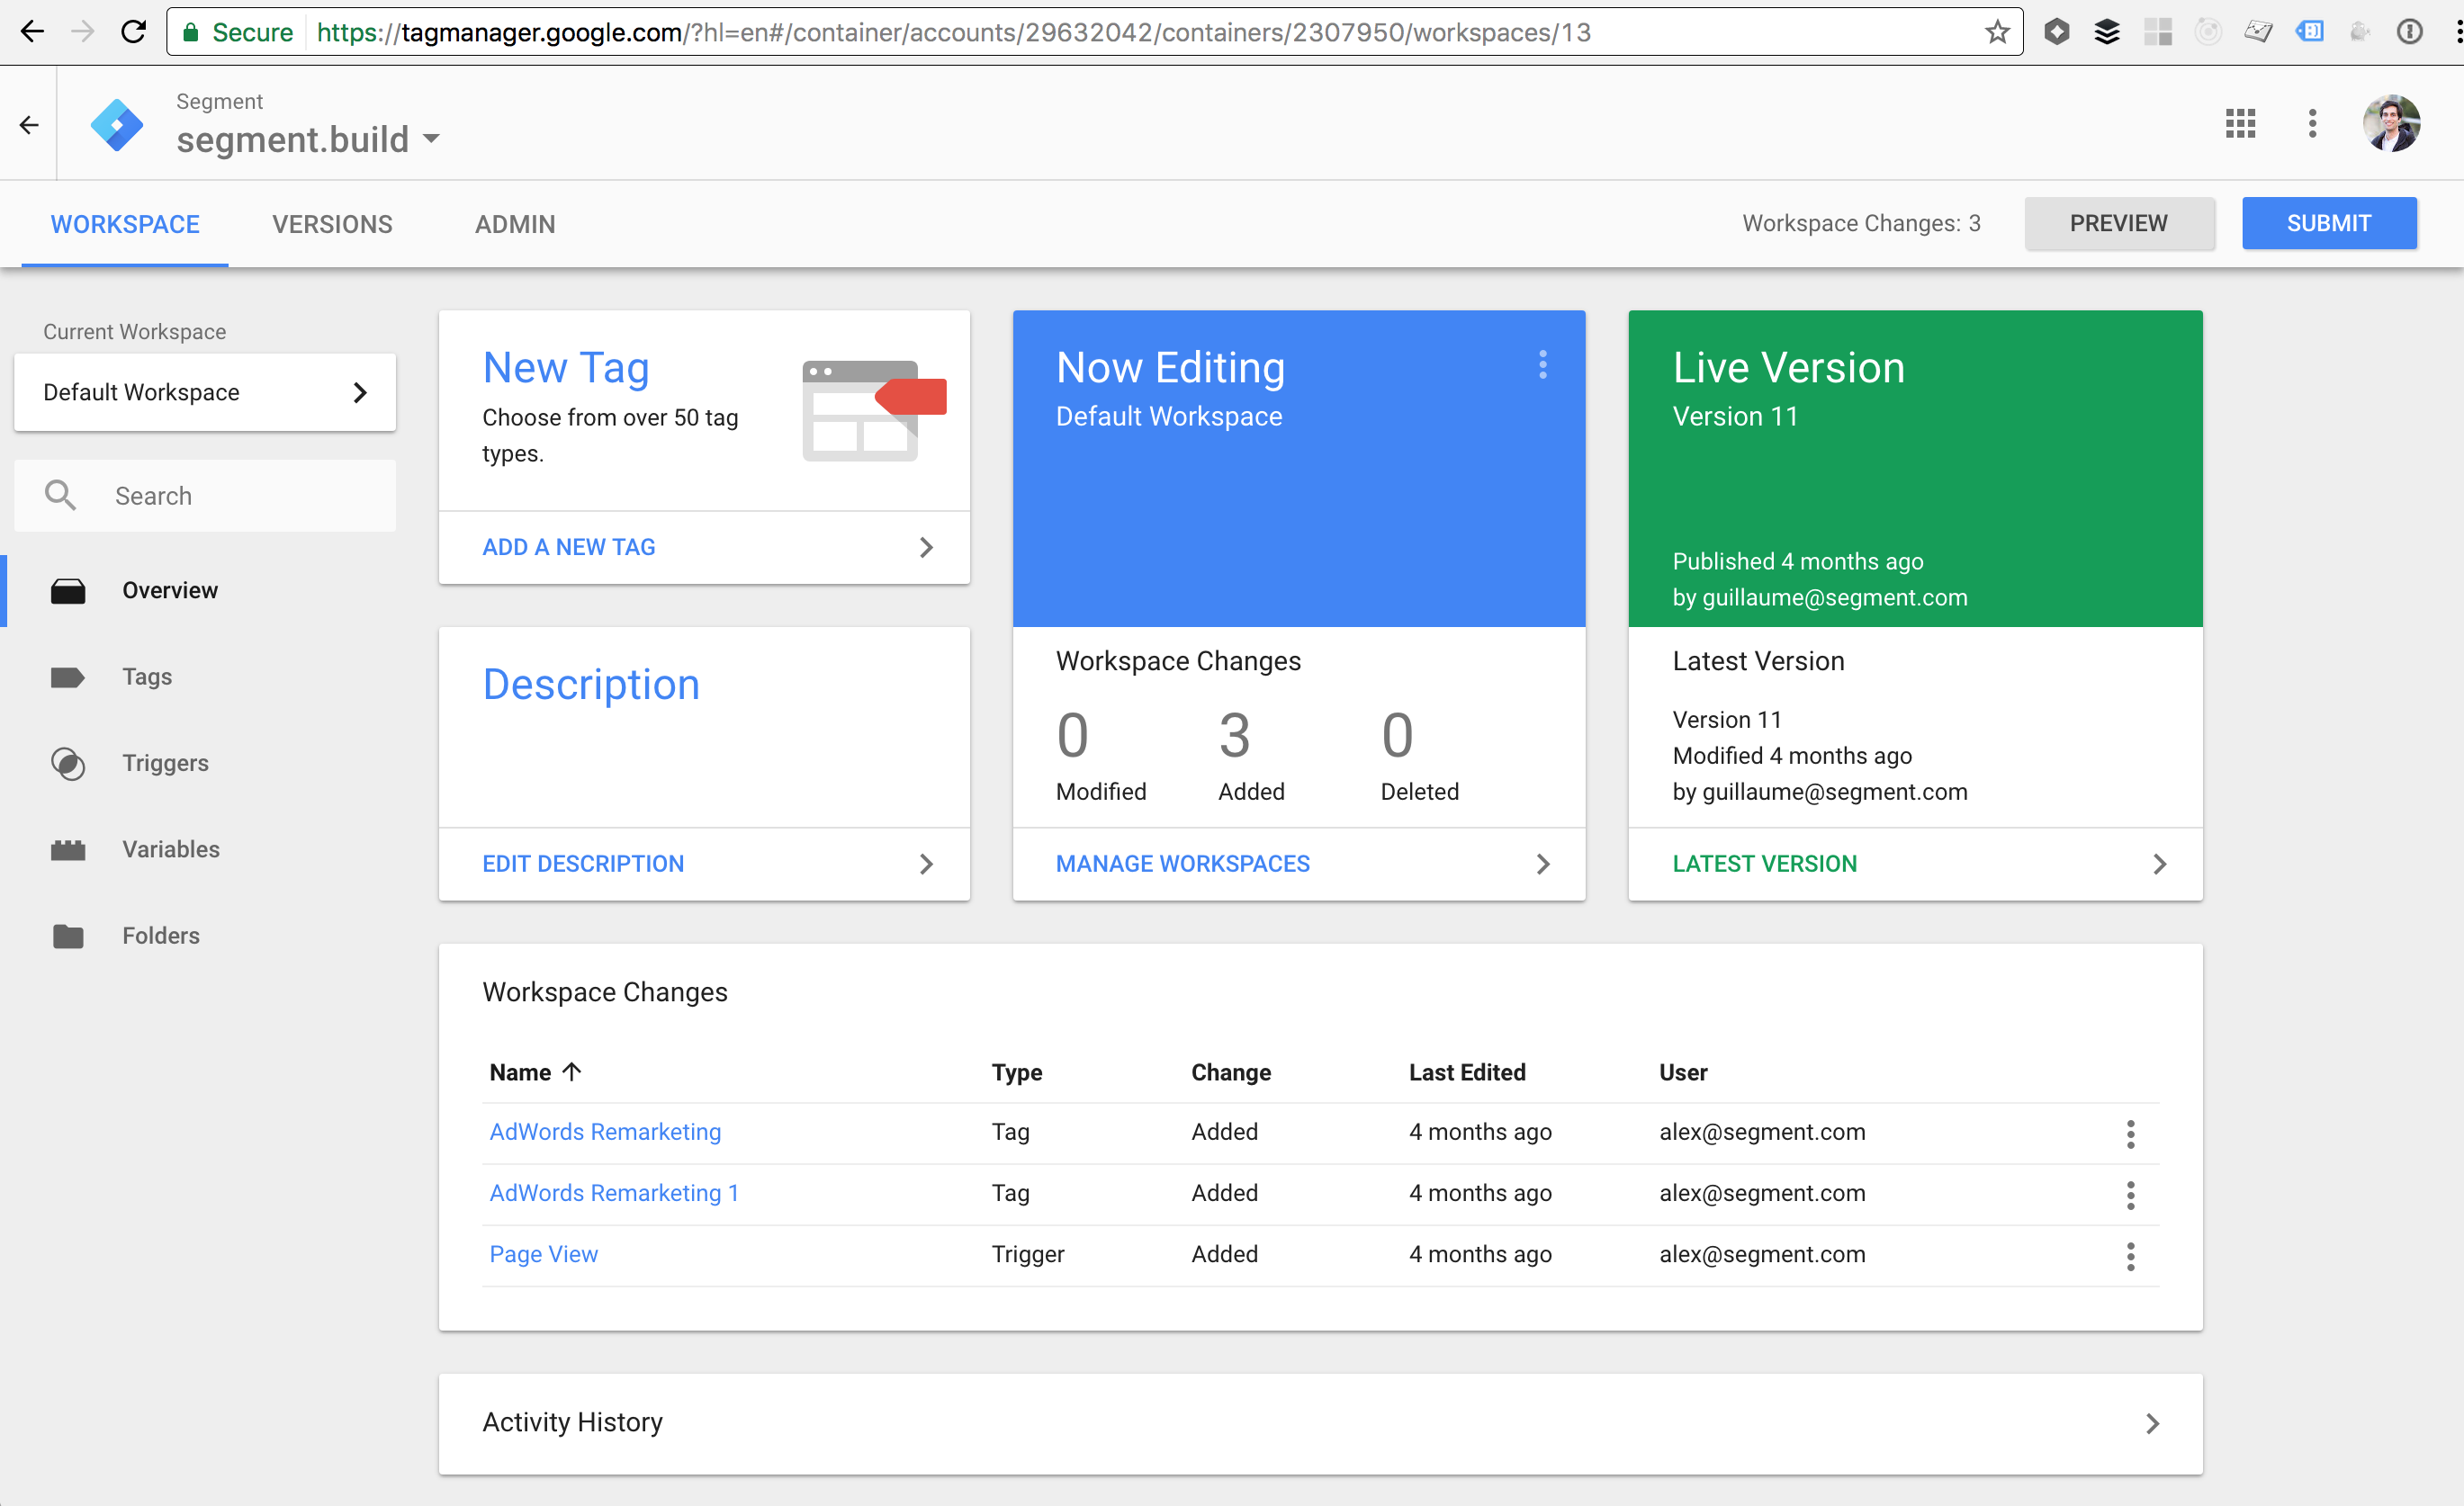 Provides at-a-glance dashboard so marketers can add new tags and manage tags with a few clicks